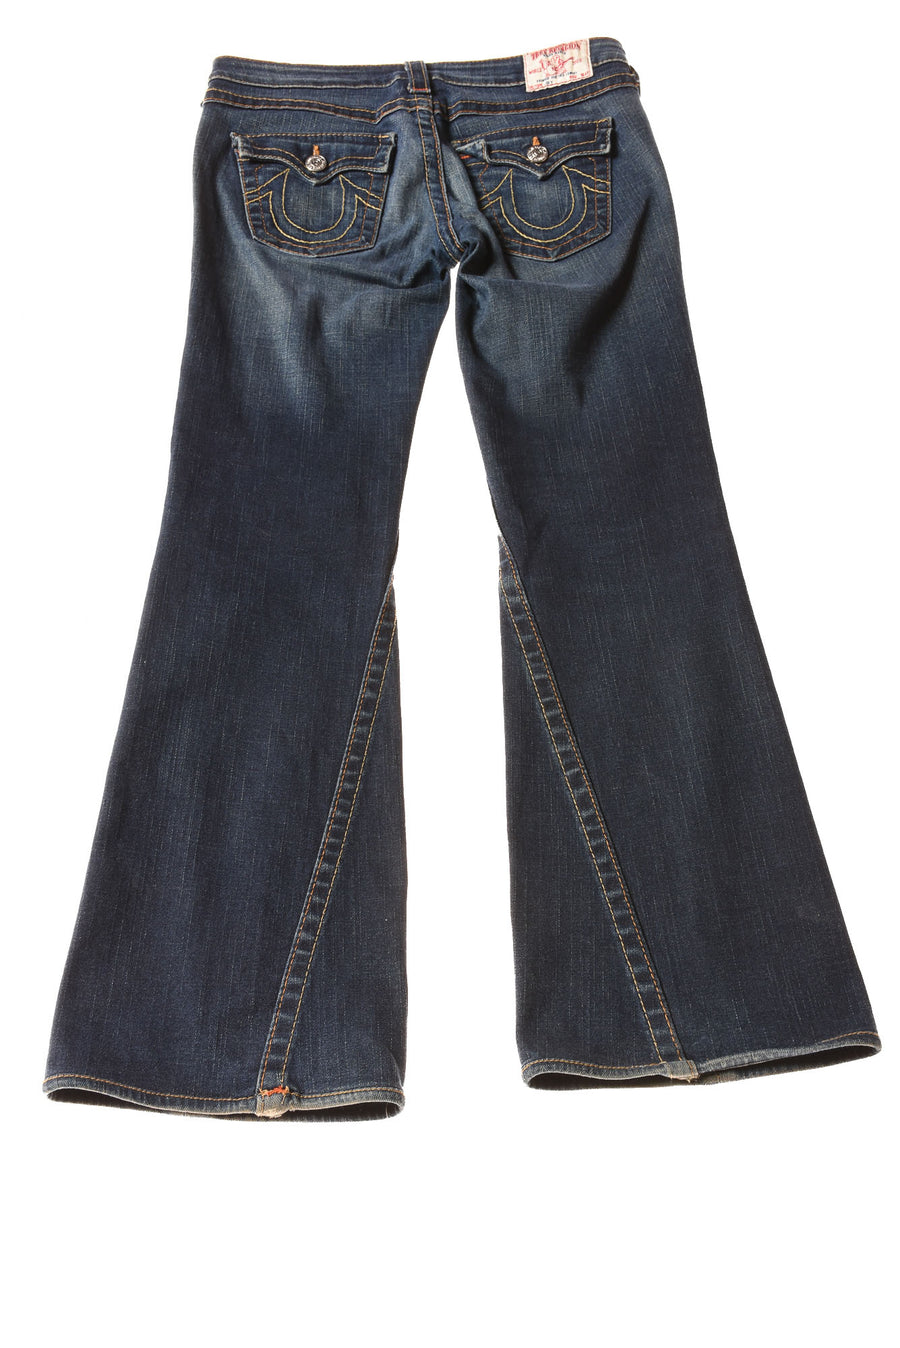 USED True Religion Women's Jeans 29 Blue